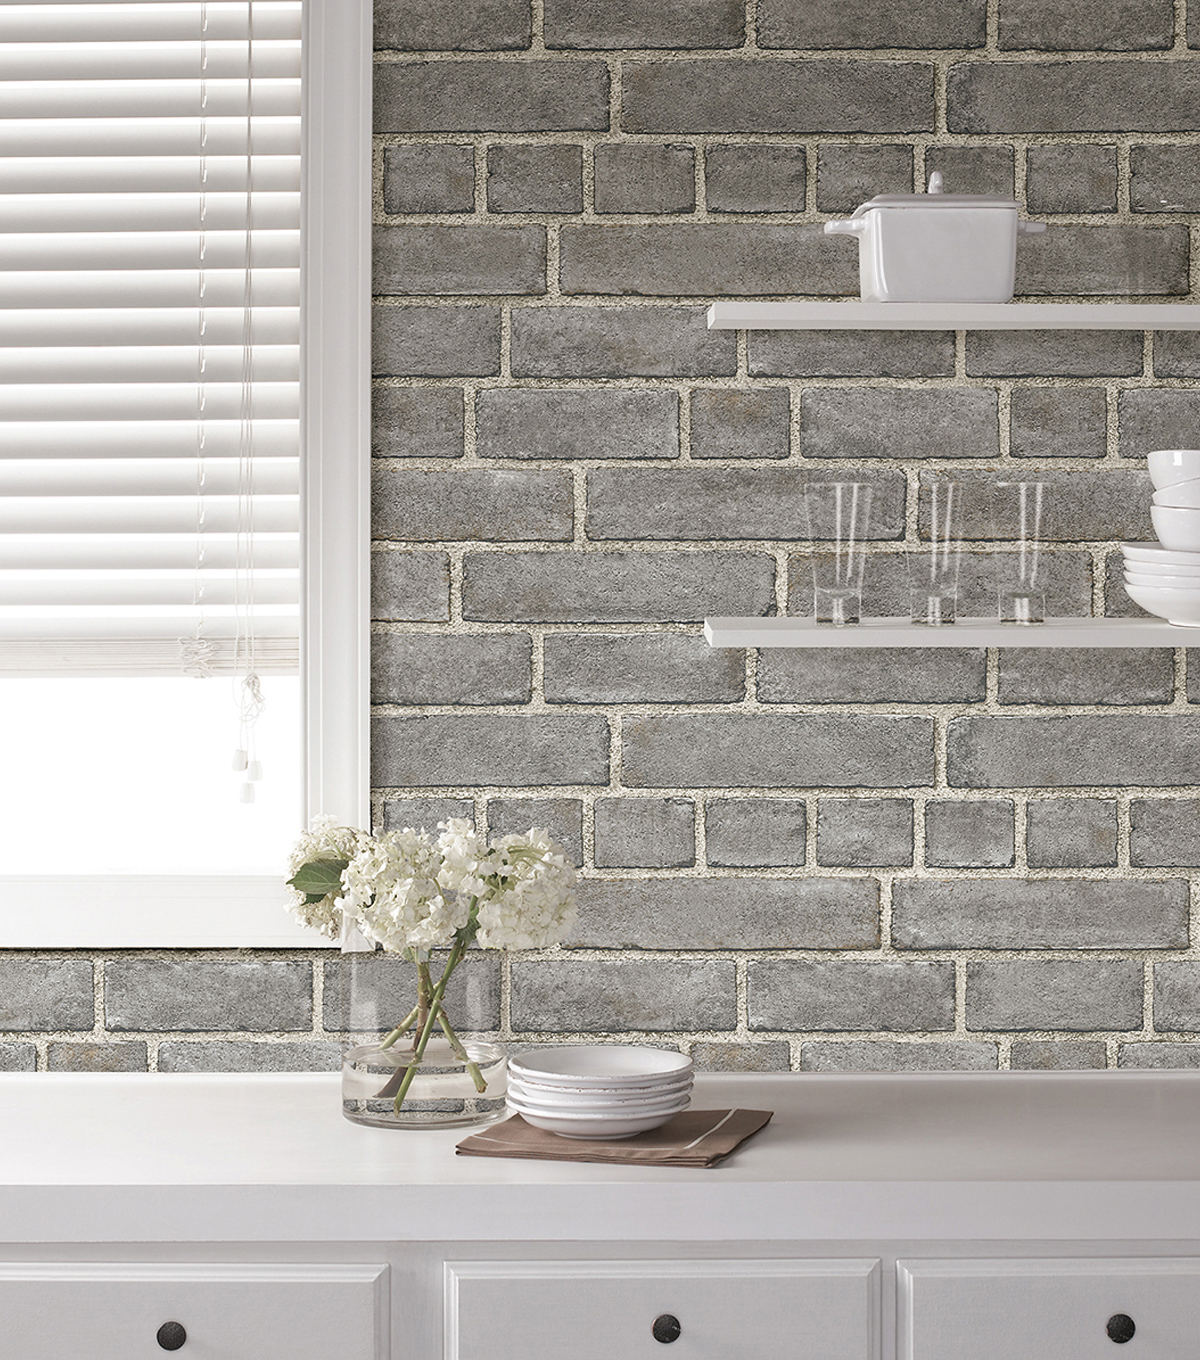 WallPops NuWallpaper Peel & Stick Wallpaper-Brick Facade